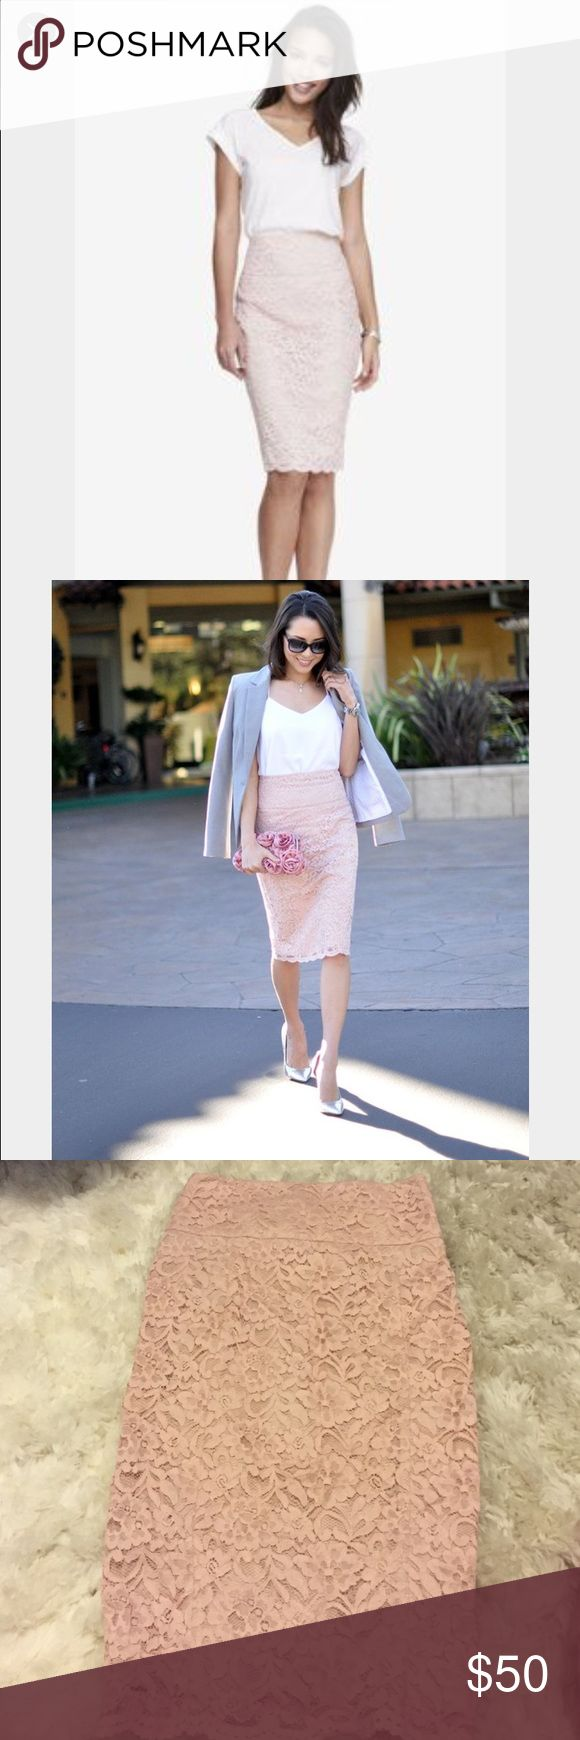 Dusty rose express lace pencil skirt Form fitted, lace pencil skirt, zips in back, brand new Express Skirts Pencil